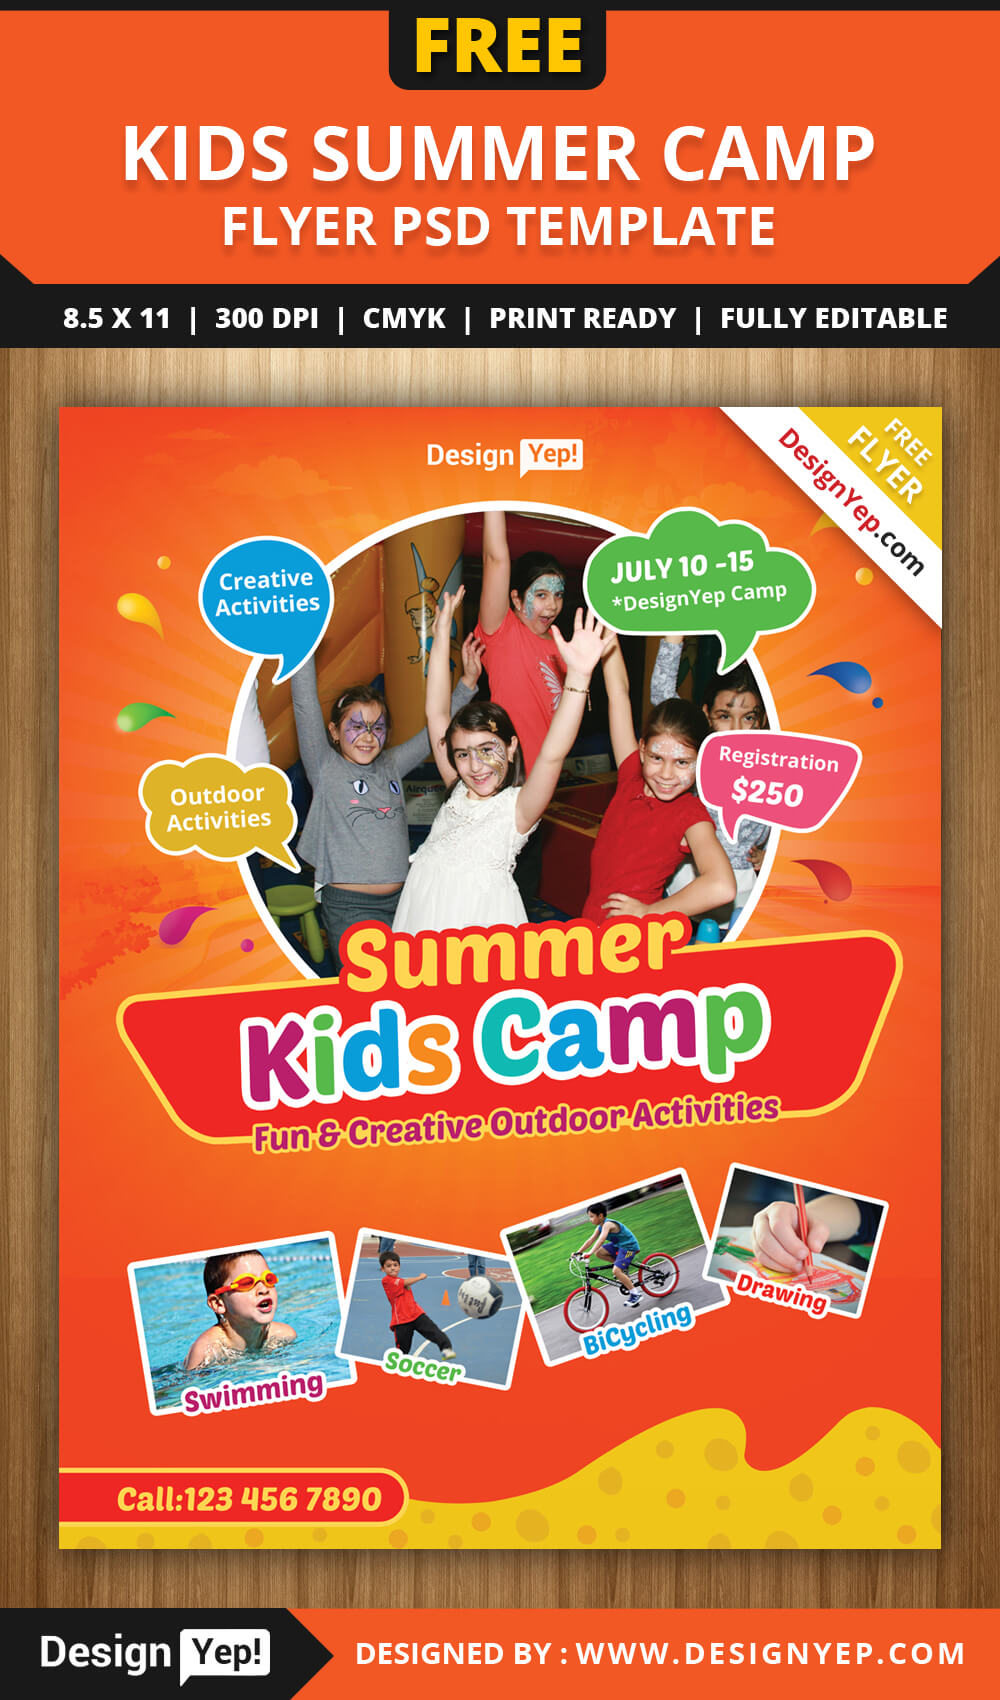 Free Kids Summer Camp Flyer Psd Template On Behance Throughout Summer Camp Brochure Template Free Download